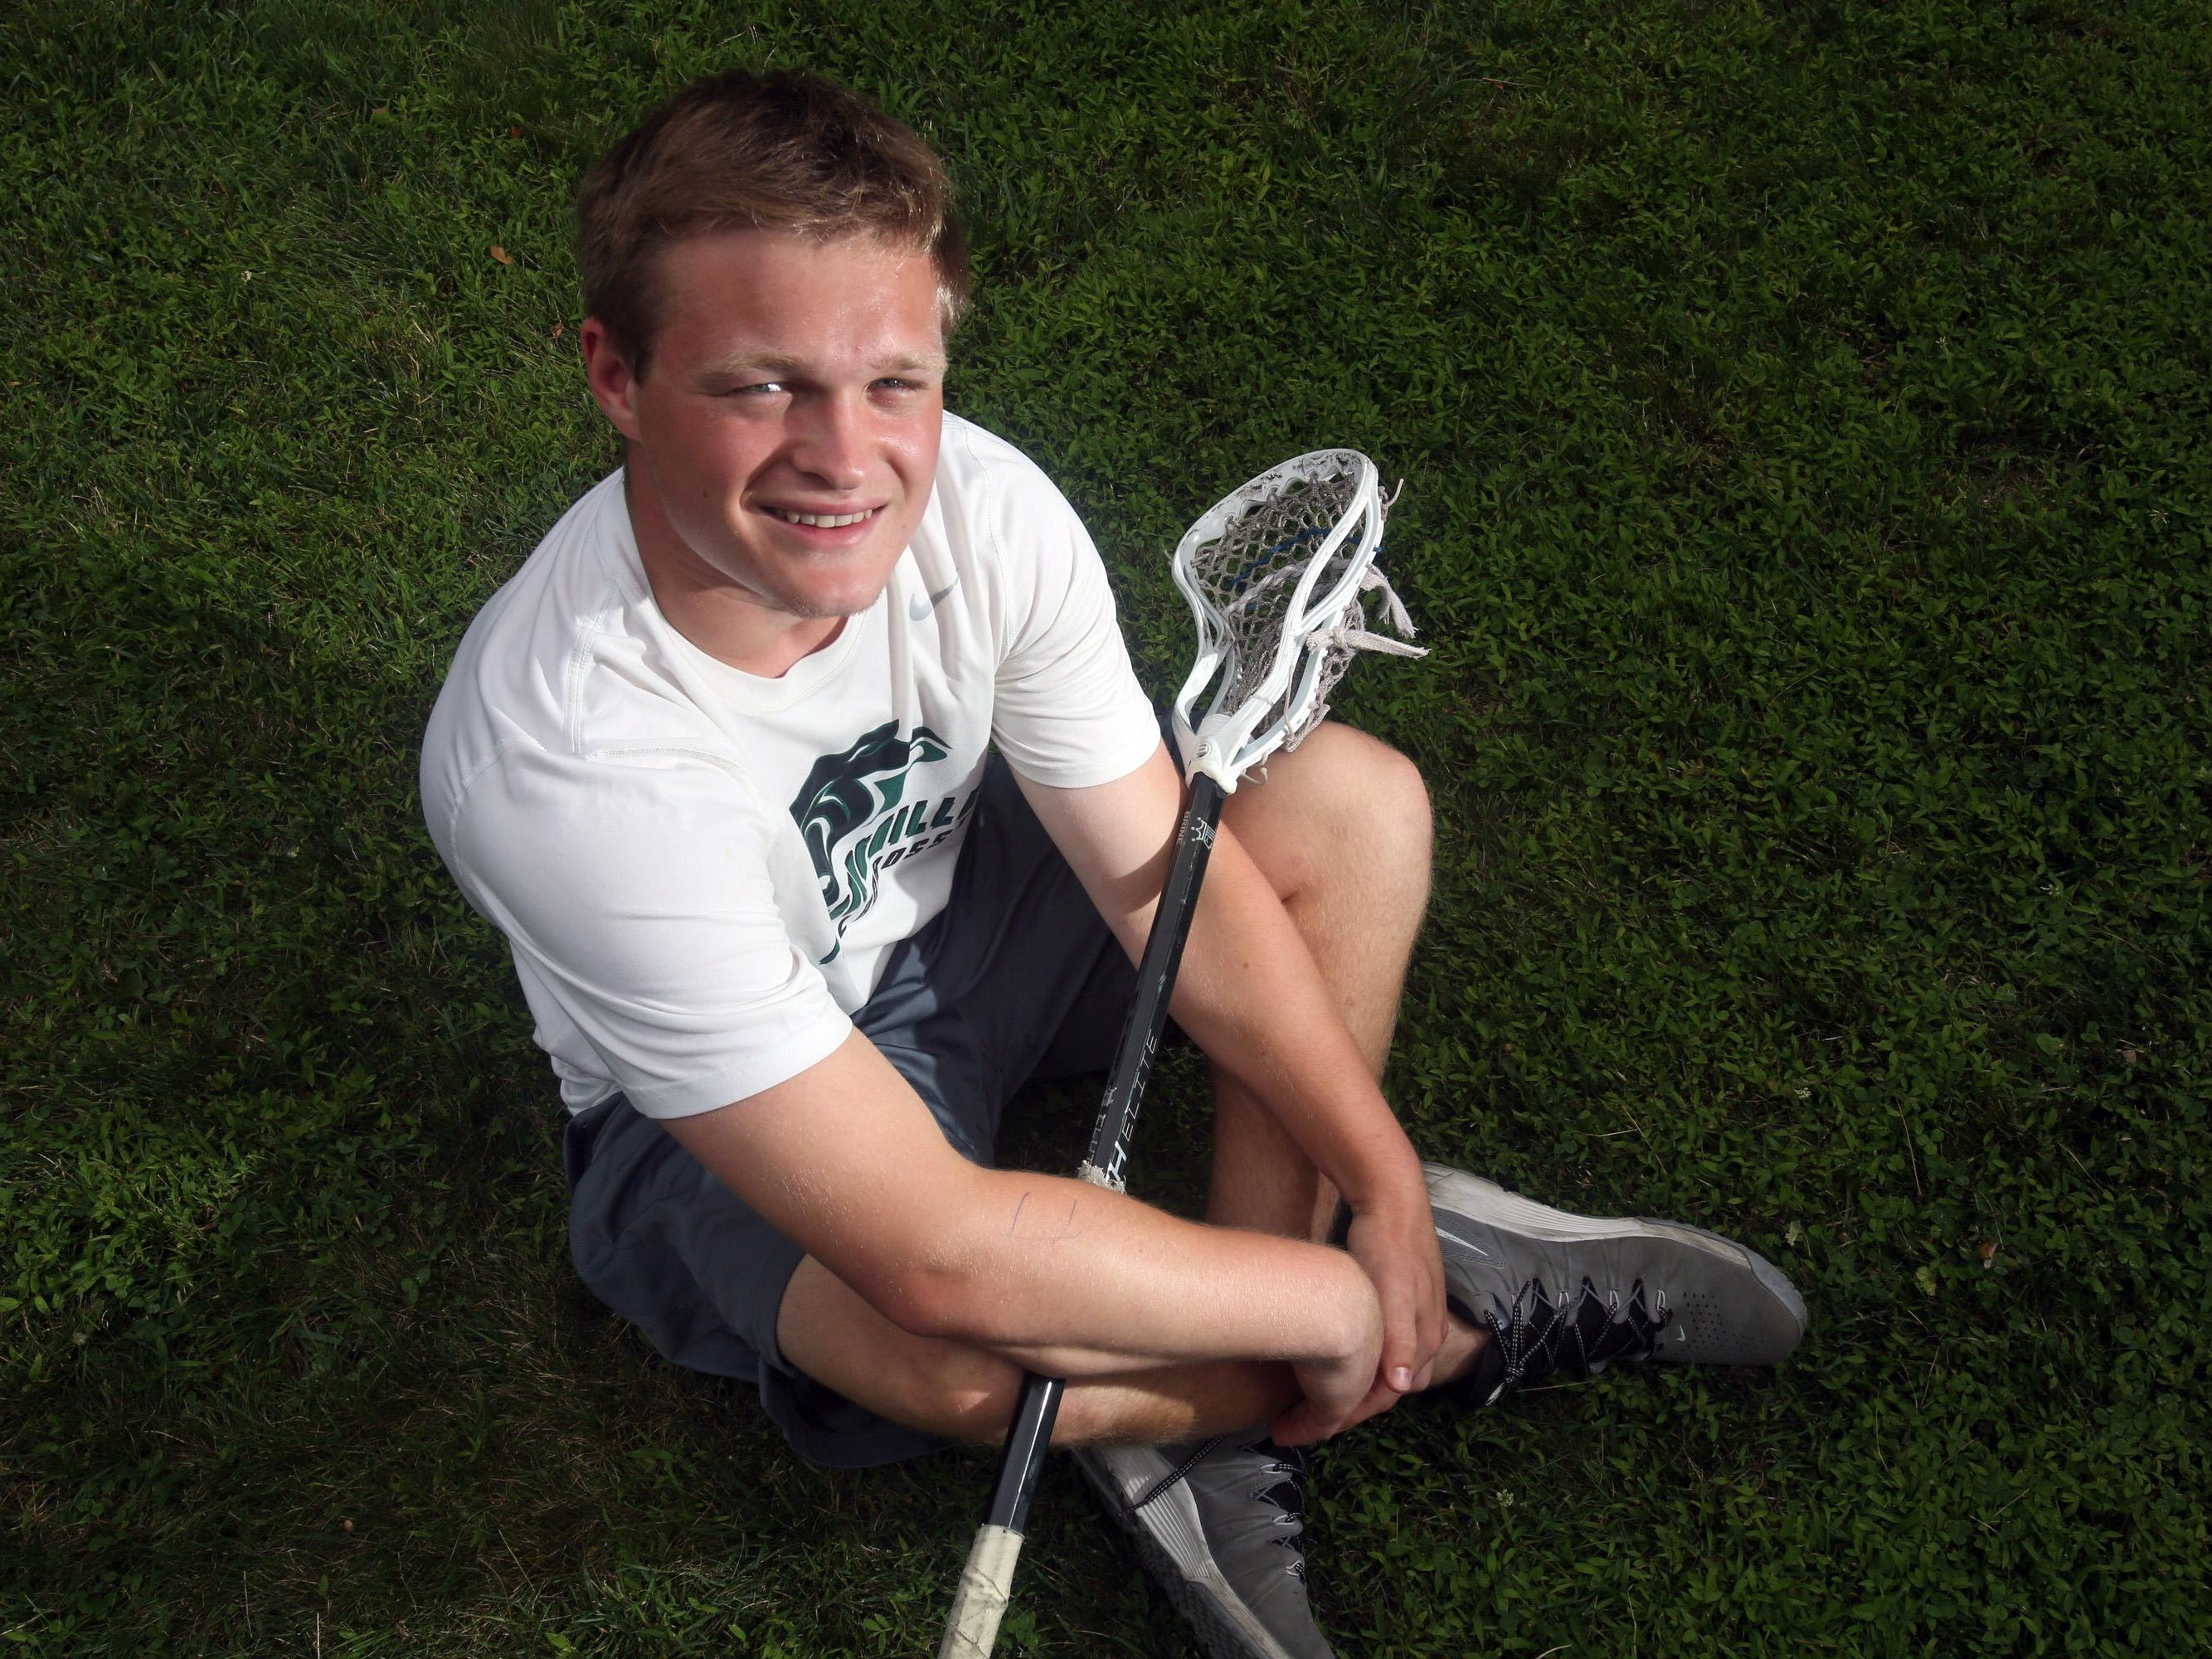 Pleasantville's Josh Della Puca, photographed July 2, 2015, is the Westchester/Putnam boys lacrosse player of the year.